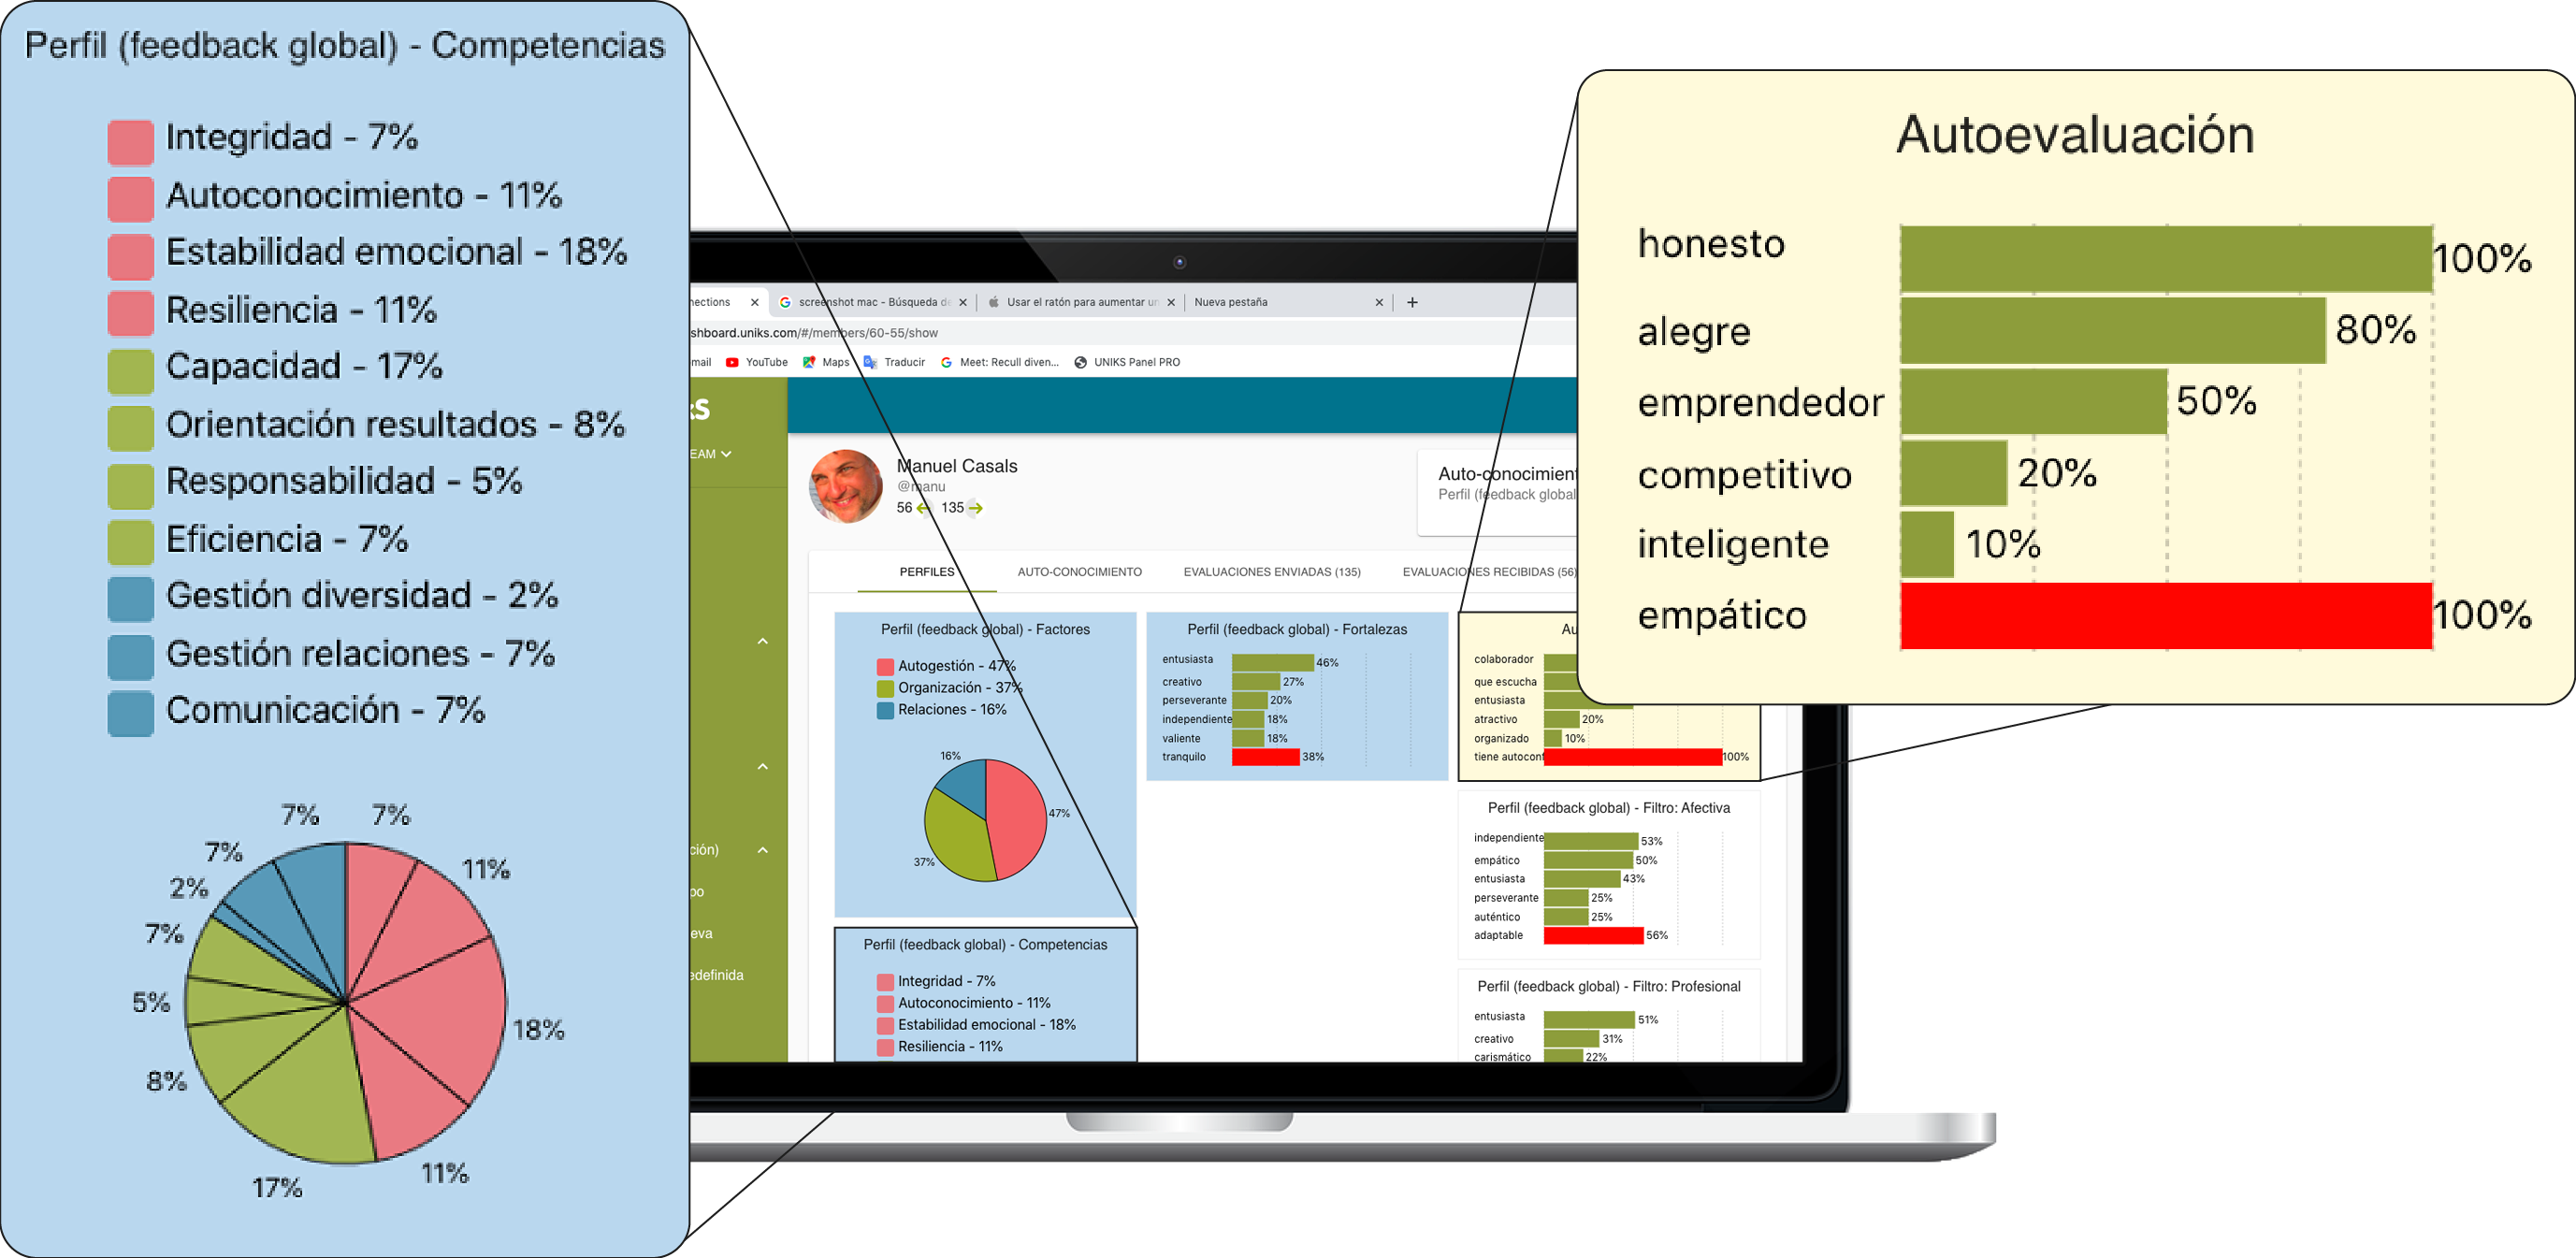 Uniks, HR platform, profile of strengths and competencies of the group and people